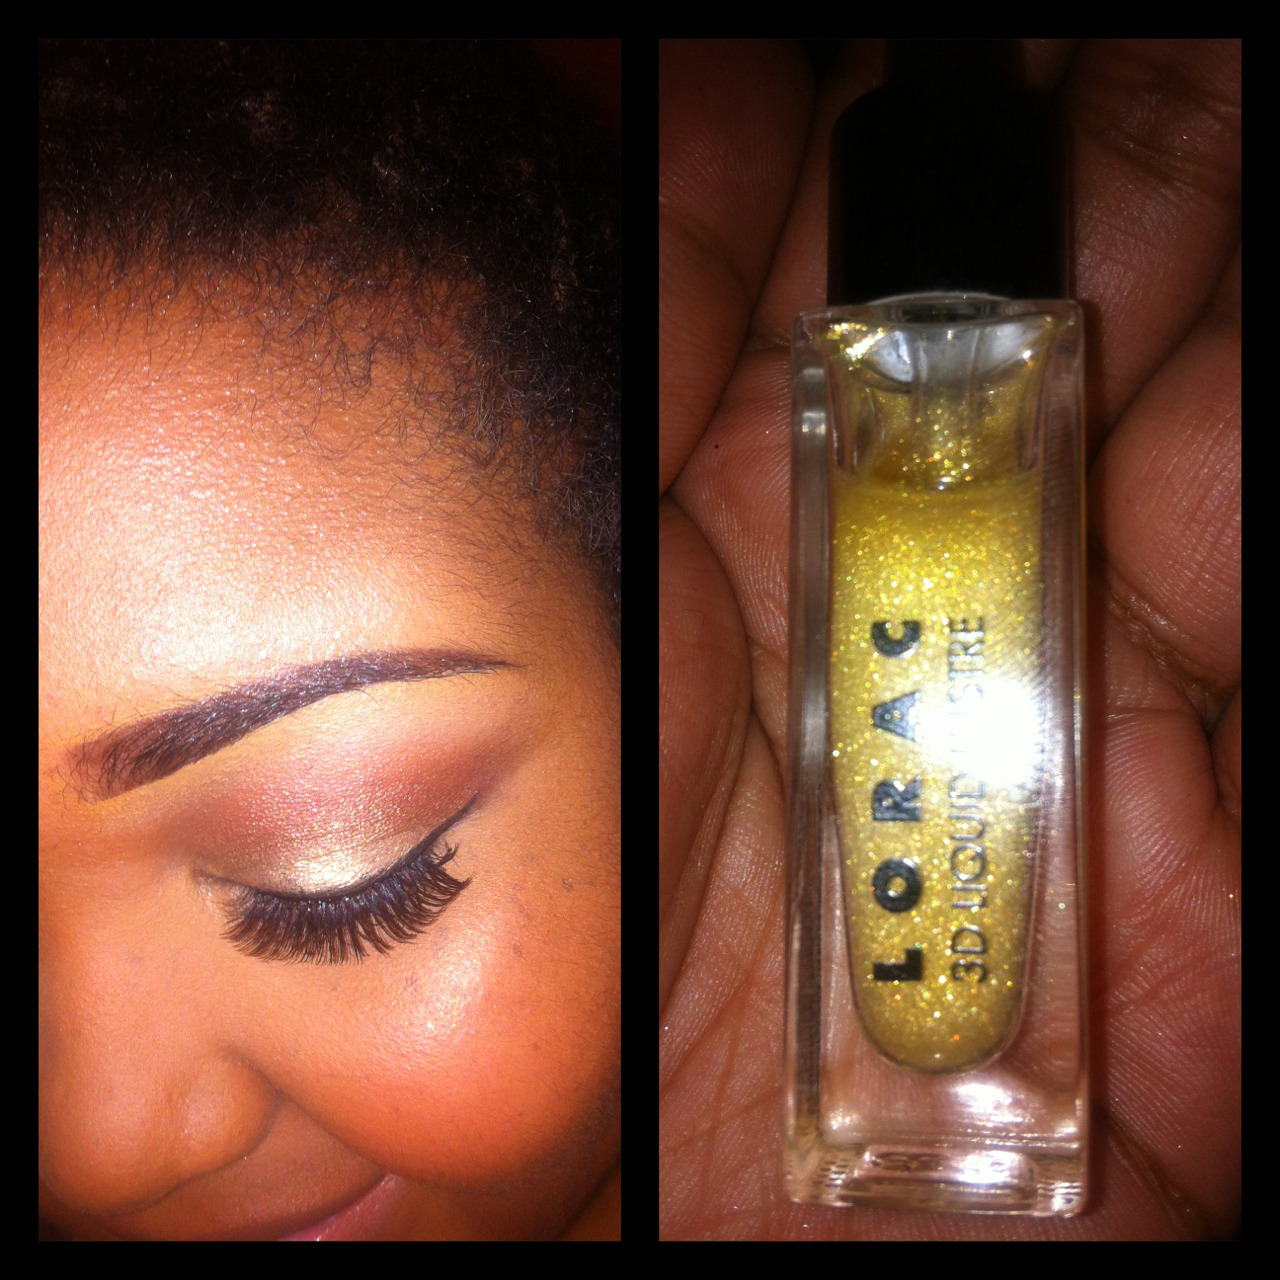 "I purchased the Lorac 3D Liquid Lustre ($16) yesterday from Sephora. It's a ""shimmering eye makeup top coat"". I've used it as an eye shadow and also as a highlight on my cheekbones. I really like it. It gives a really subtle shimmer, but is buildable if you want more sparkle. I'll be doing a full review in a few weeks! :]"